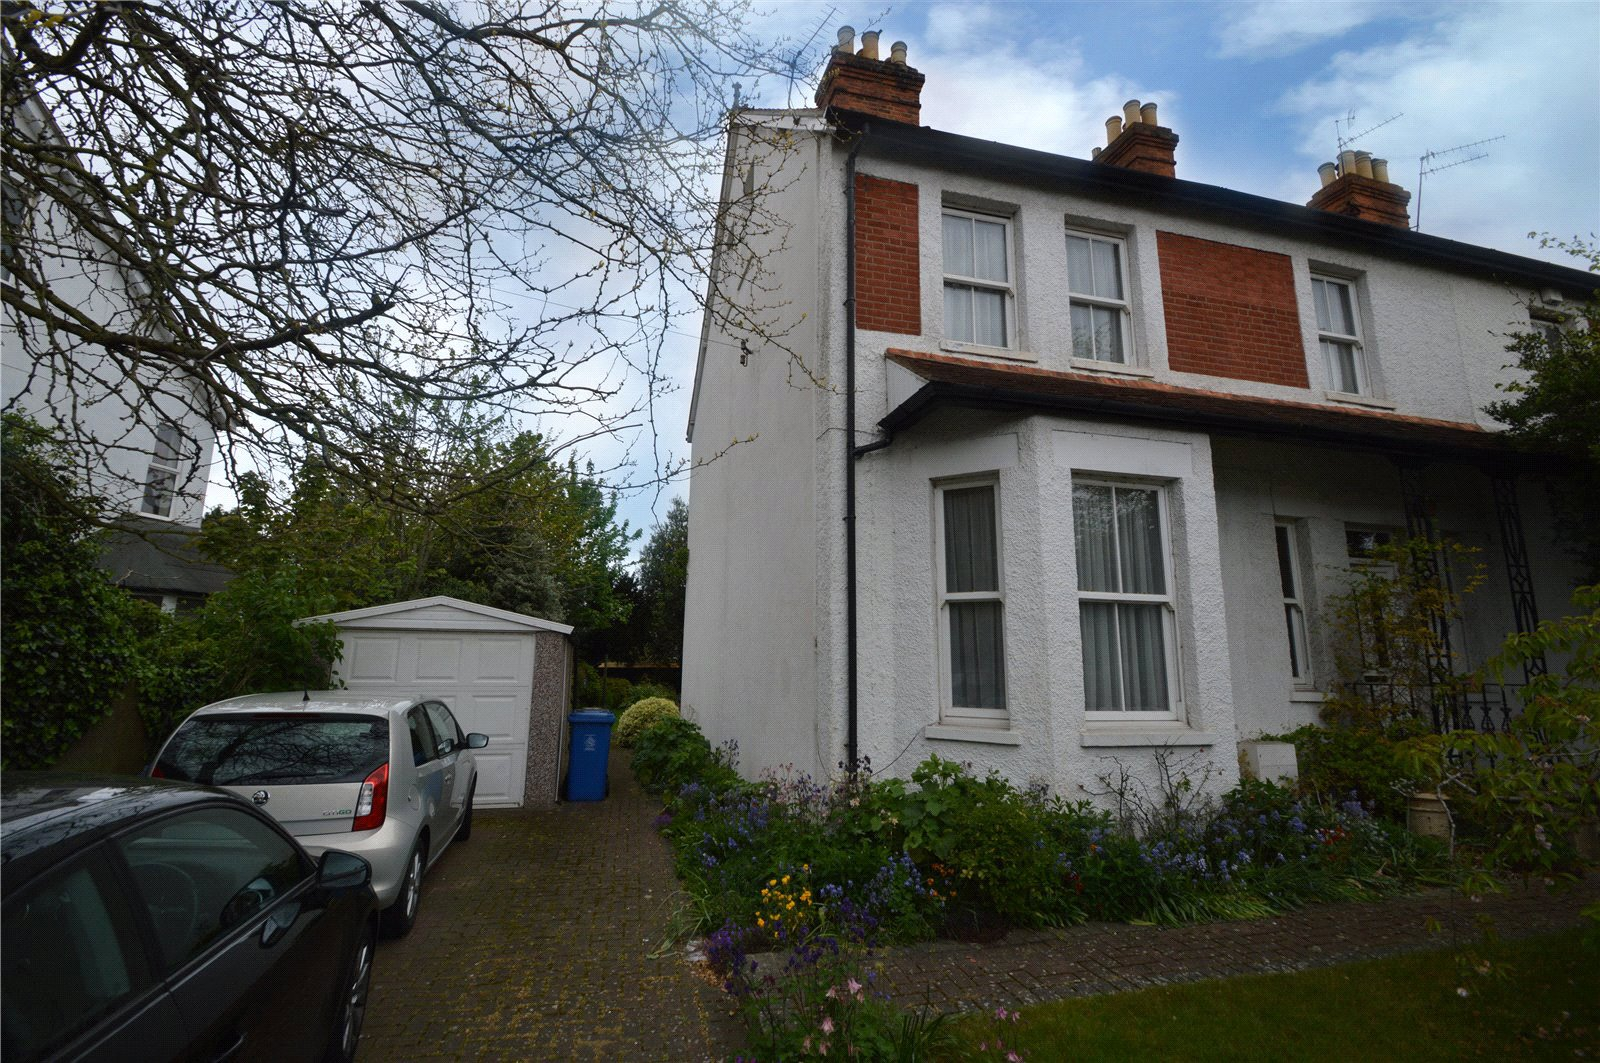 5 Bedrooms Semi Detached House for sale in St. Lukes Road, Maidenhead, Berkshire, SL6